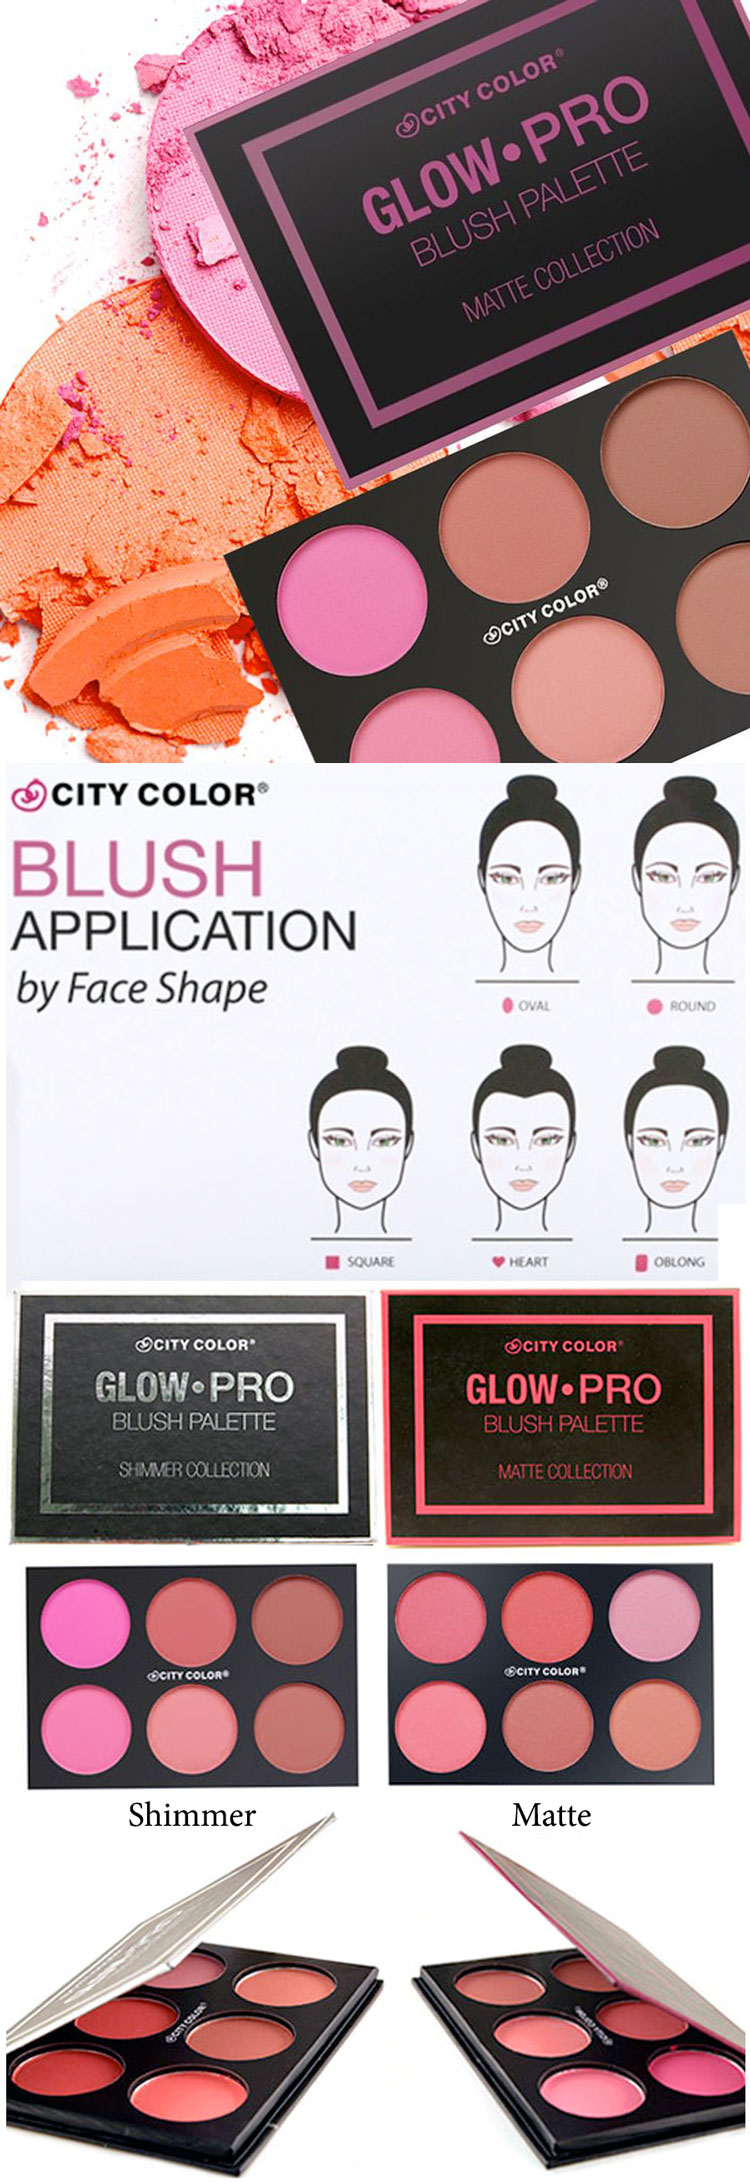 Bảng Má Hồng City Color Glow-Pro Matte Collection Blush (6 x 3.28g) 1